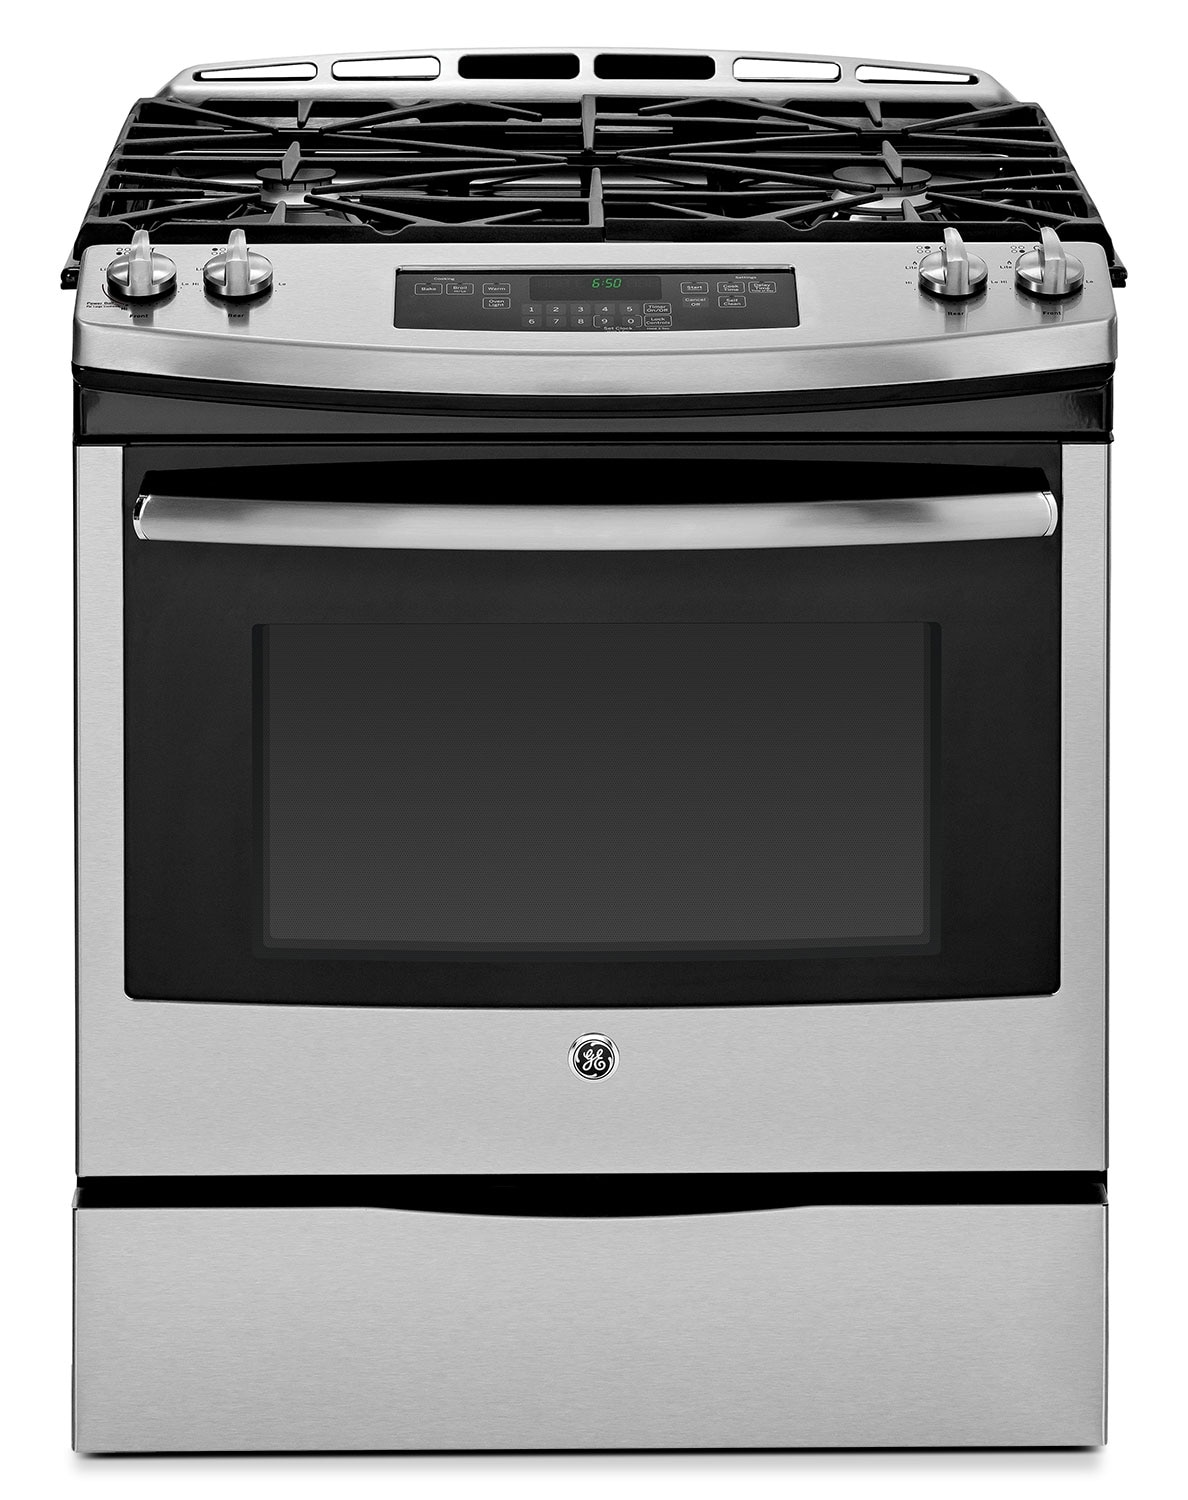 Cooking Products - GE Stainless Steel Slide-In Gas Range (5.4 Cu. Ft.) - JCGS650SEFSS